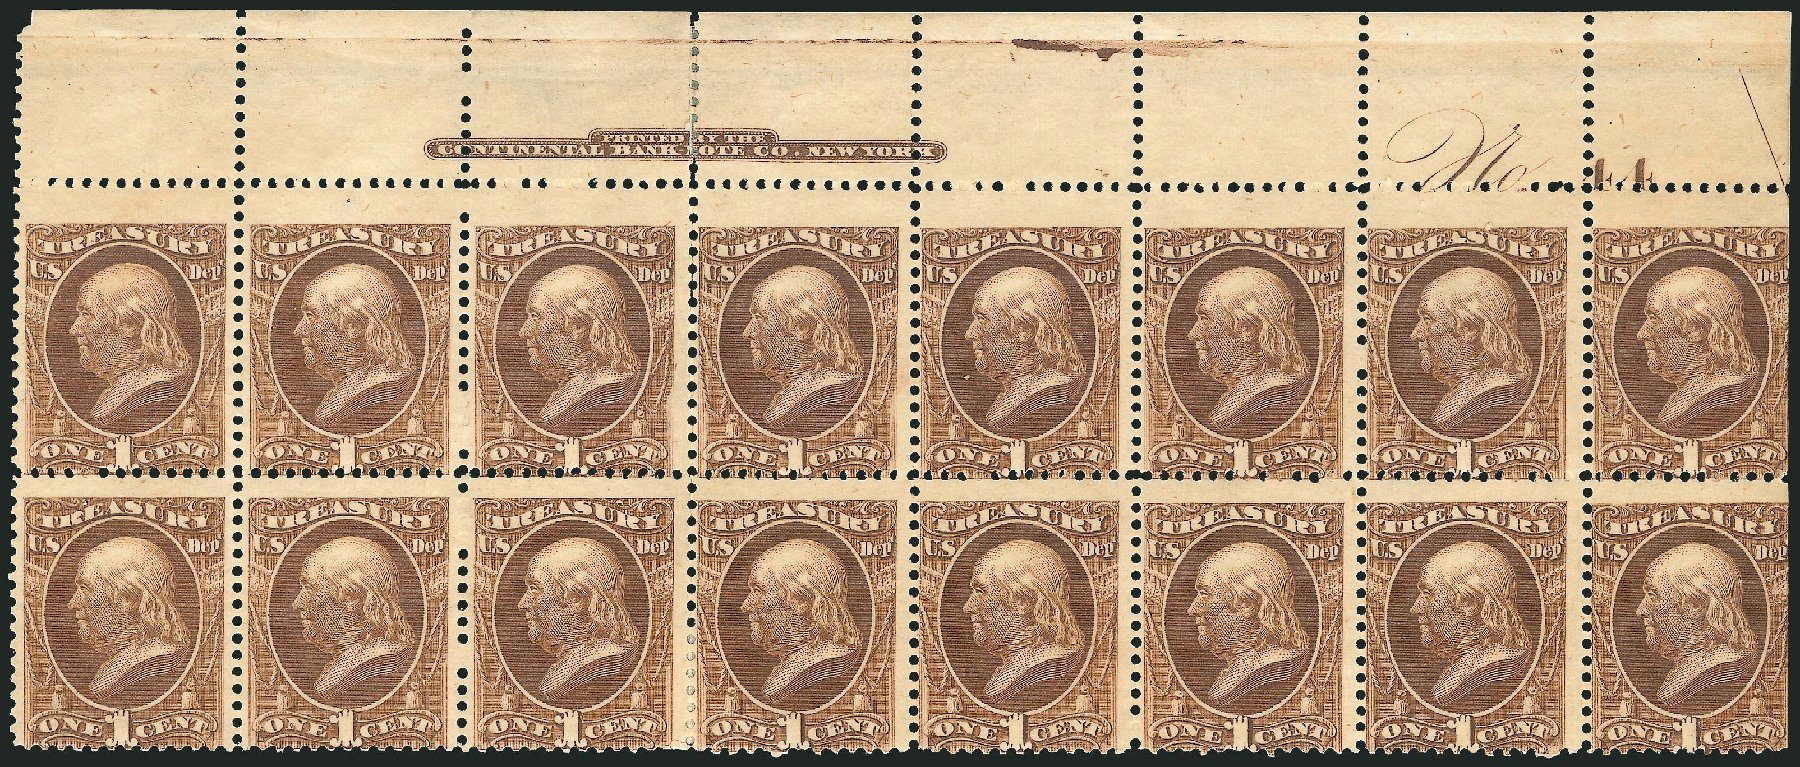 Prices of US Stamp Scott Catalog #O72: 1873 1c Treasury Official. Robert Siegel Auction Galleries, Jul 2014, Sale 1077, Lot 447